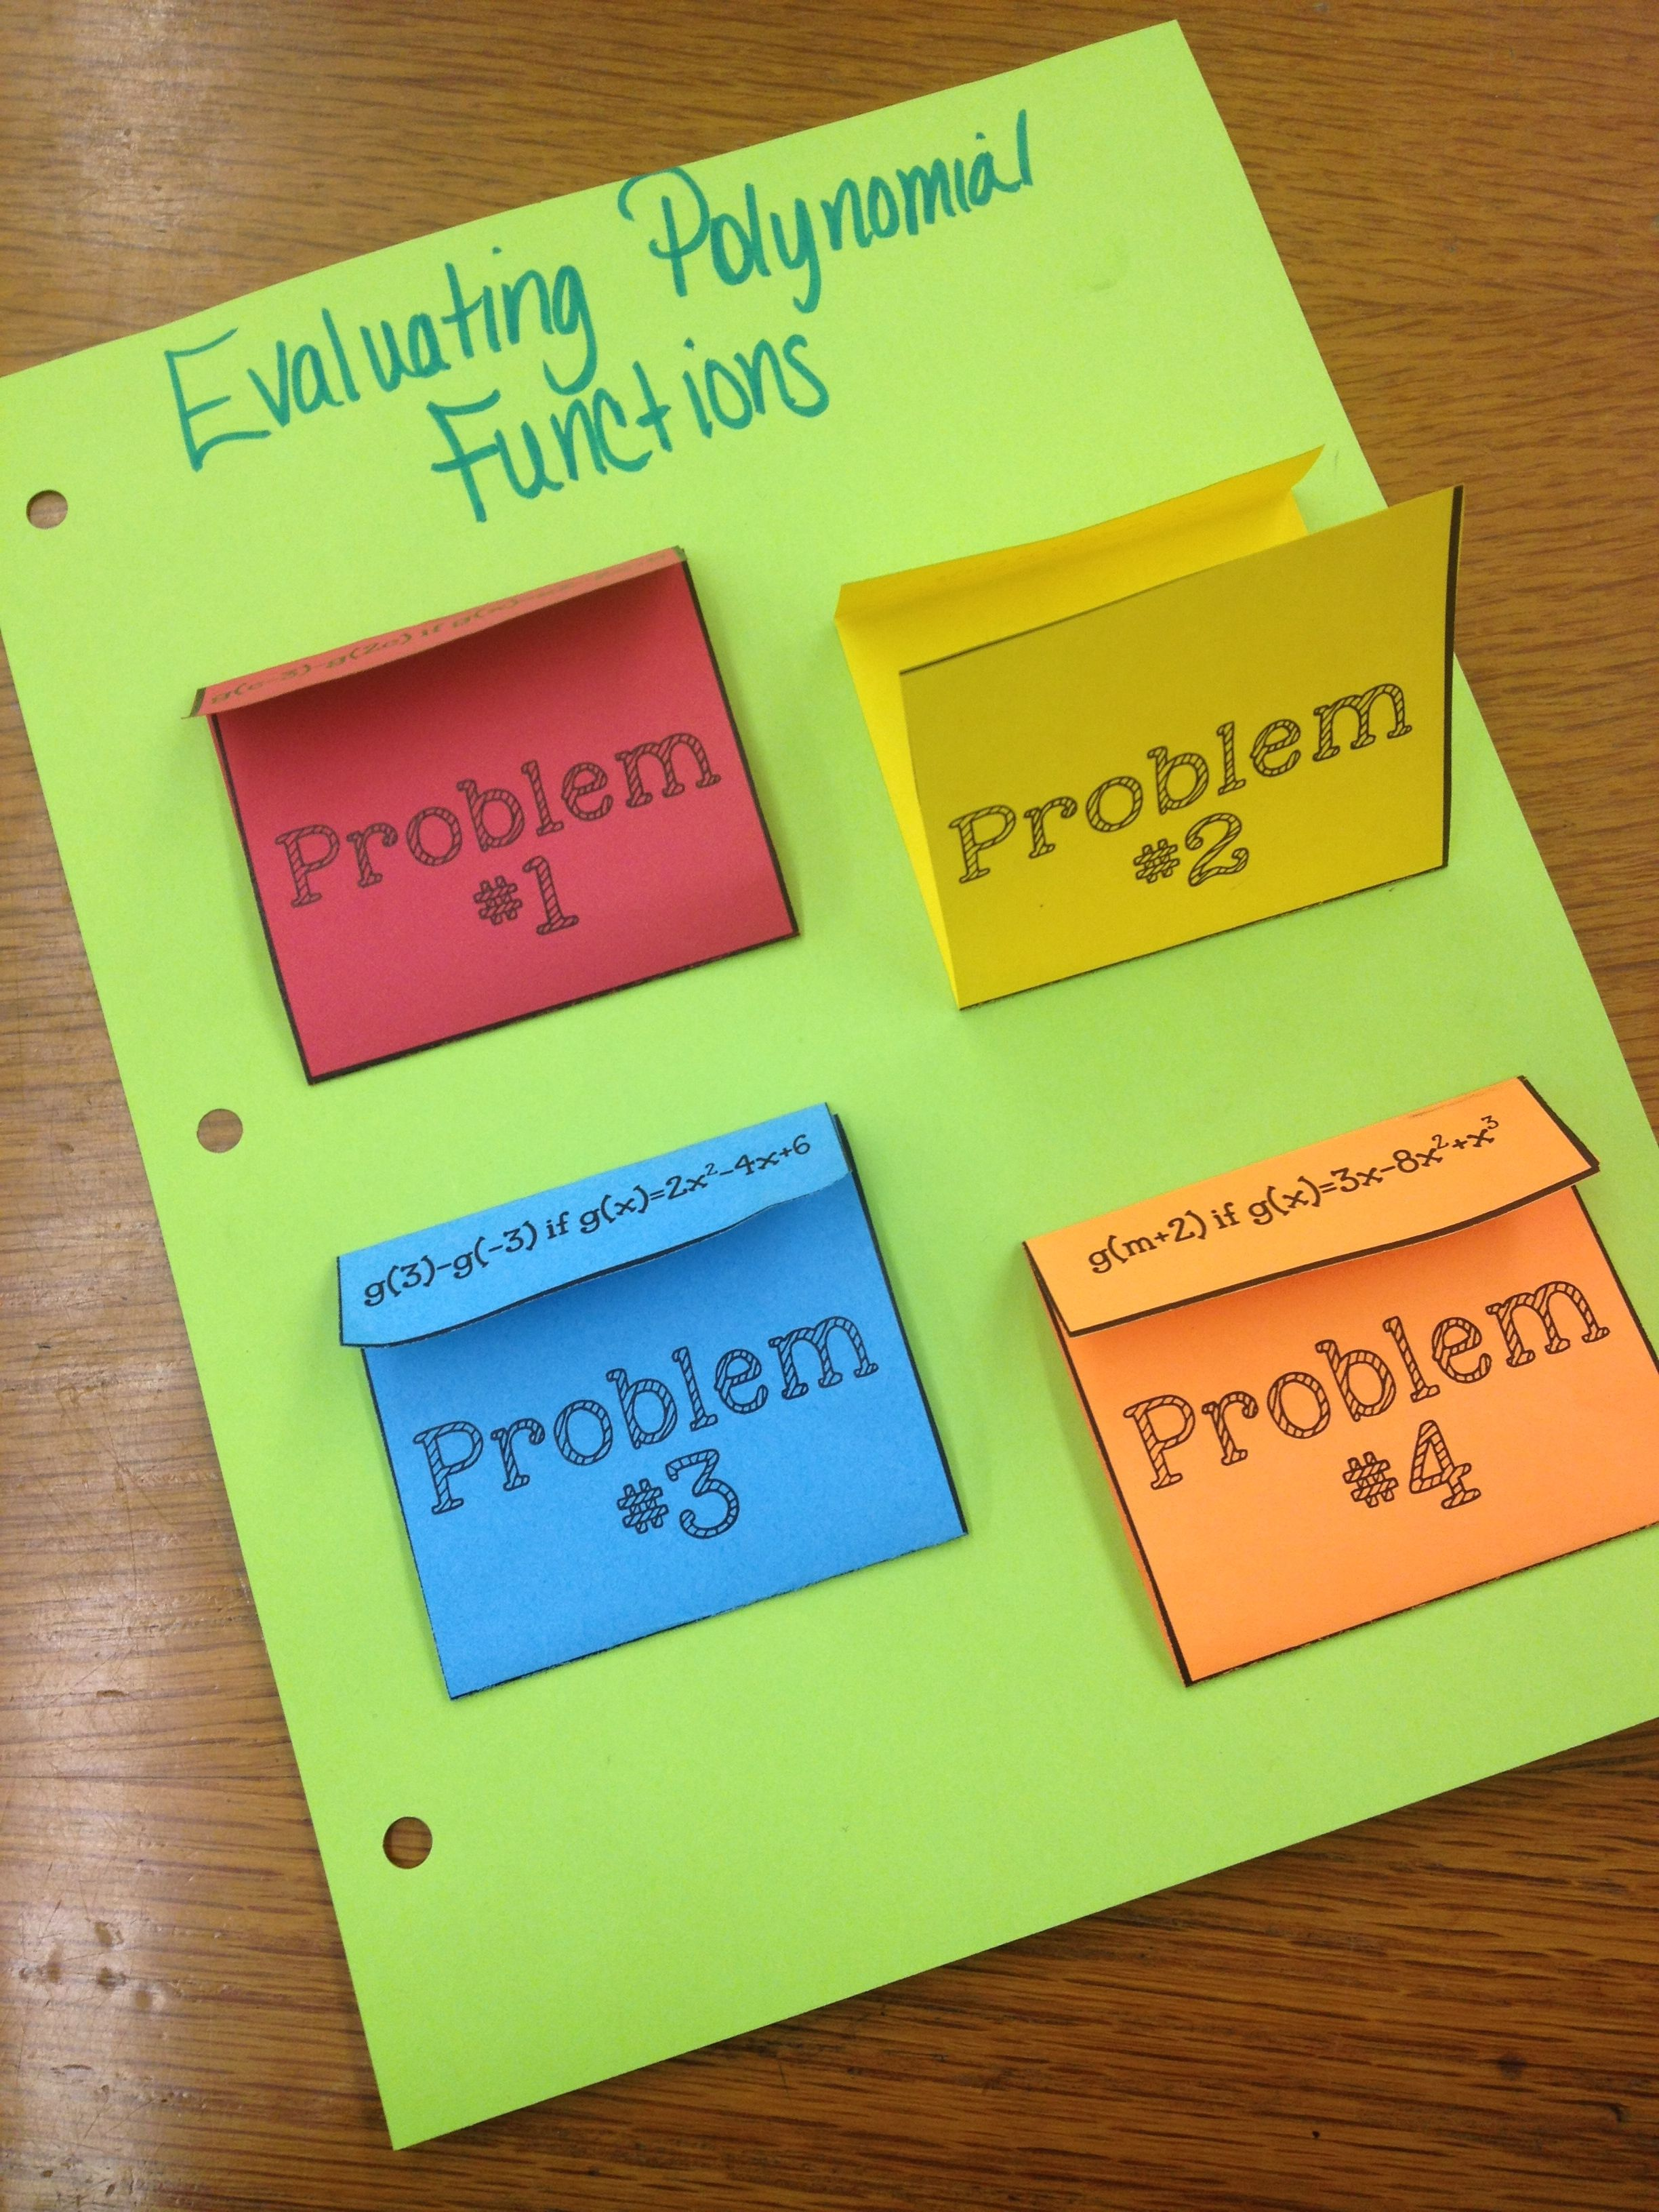 A Fun Way For Students To Practice Math Problems This Post Includes A Couple Of Freebies For